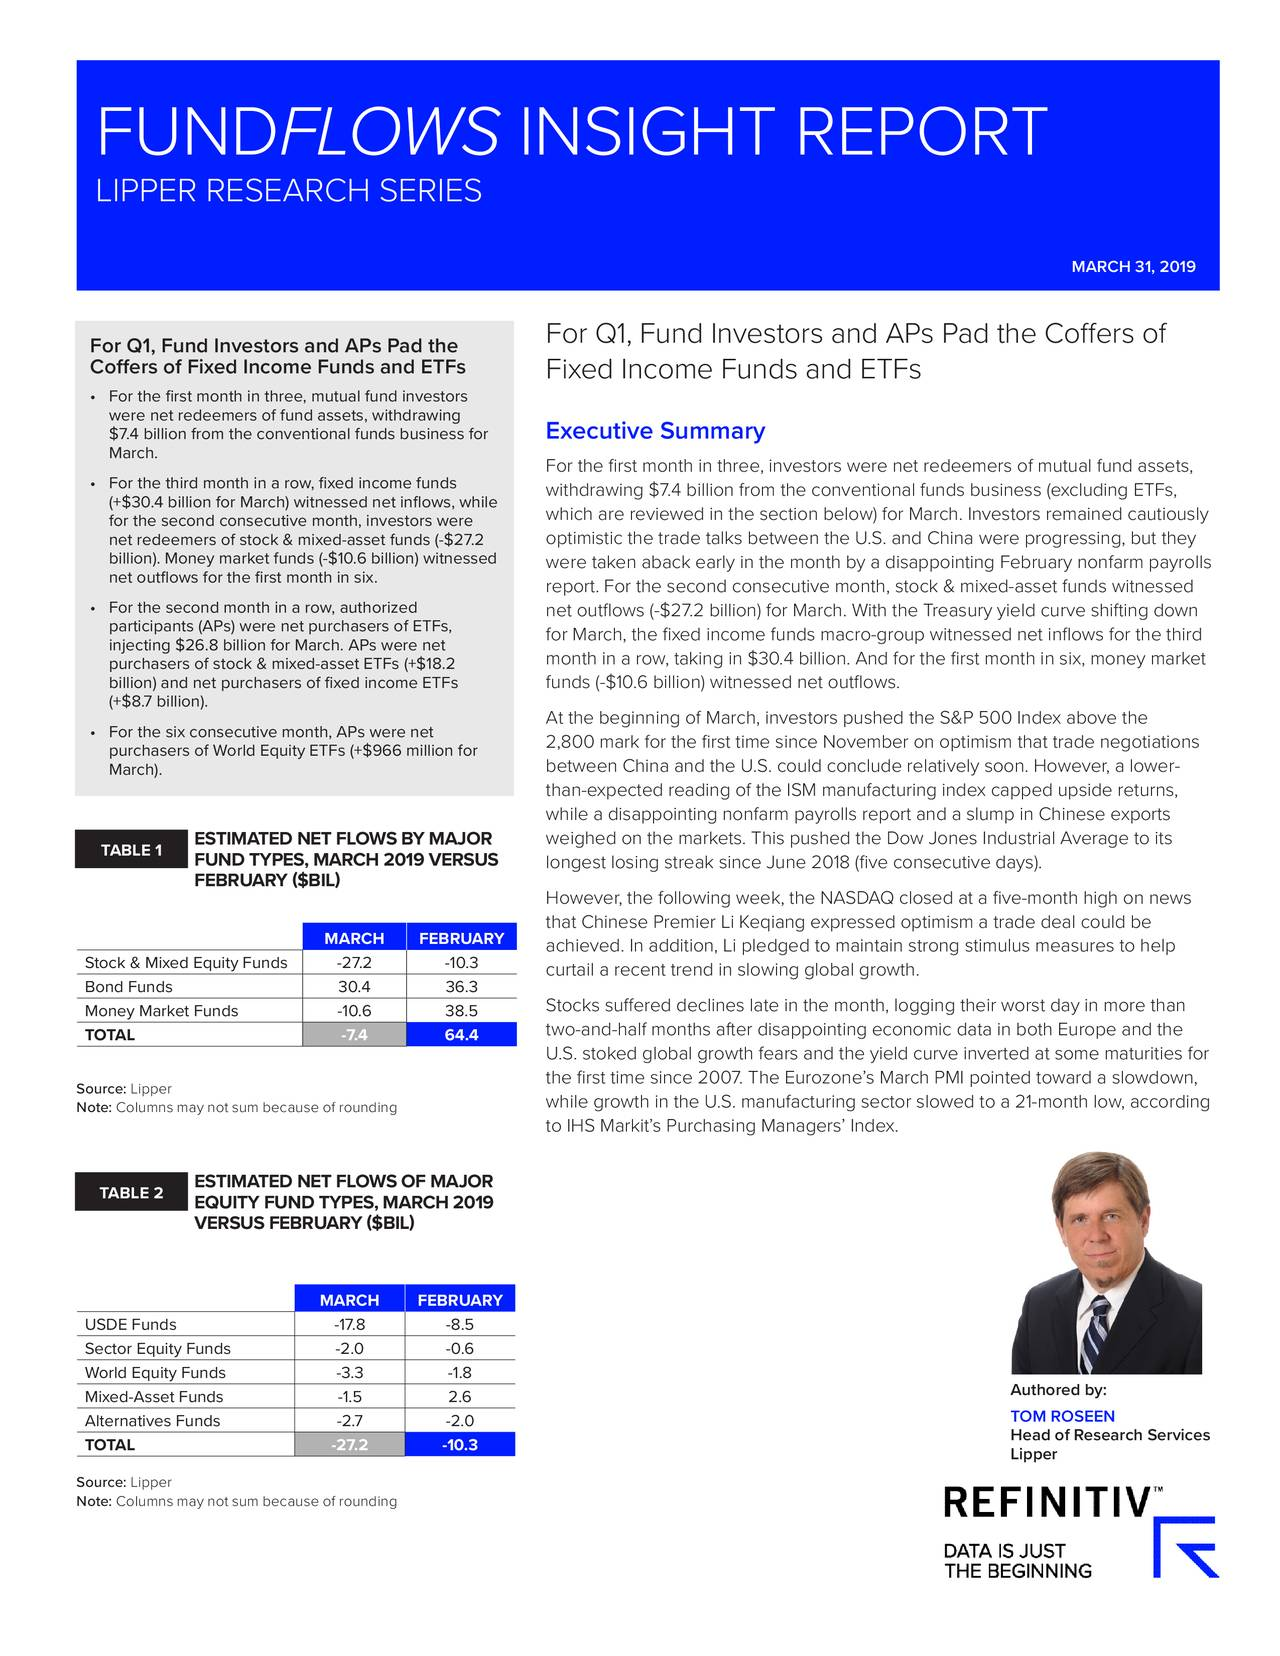 LIPPER RESEARCH SERIES MARCH 31, 2019 For Q1, Fund Investors and APs Pad the For Q1, Fund Investors and APs Pad the Coffers of Coffers of Fixed Income Funds and ETFs Fixed Income Funds and ETFs • For the first month in three, mutual fund investors were net redeemers of fund assets, withdrawing $7.4 billion from the conventional funds business forxecutive Summary March. For the first month in three, investors were net redeemers of mutual fund assets, • For the third month in a row, fixed income funds withdrawing $7.4 billion from the conventional funds business (excluding ETFs, (+$30.4 billion for March) witnessed net inflows, whwhich are reviewed in the section below) for March. Investors remained cautiously for the second consecutive month, investors were net redeemers of stock & mixed-asset funds (-$27.2 optimistic the trade talks between the U.S. and China were progressing, but they billion). Money market funds (-$10.6 billion) witneswere taken aback early in the month by a disappointing February nonfarm payrolls net outflows for the first month in six. report. For the second consecutive month, stock & mixed-asset funds witnessed • For the second month in a row, authorized net outflows (-$27.2 billion) for March. With the Treasury yield curve shifting down participants (APs) were net purchasers of ETFs, injecting $26.8 billion for March. APs were net for March, the fixed income funds macro-group witnessed net inflows for the third purchasers of stock & mixed-asset ETFs (+$18.2 month in a row, taking in $30.4 billion. And for the first month in six, money market billion) and net purchasers of fixed income ETFs funds (-$10.6 billion) witnessed net outflows. (+$8.7 billion). At the beginning of March, investors pushed the S&P 500 Index above the • For the six consecutive month, APs were net purchasers of World Equity ETFs (+$966 million for 2,800 mark for the first time since November on optimism that trade negotiations March). between China and the U.S. could concl